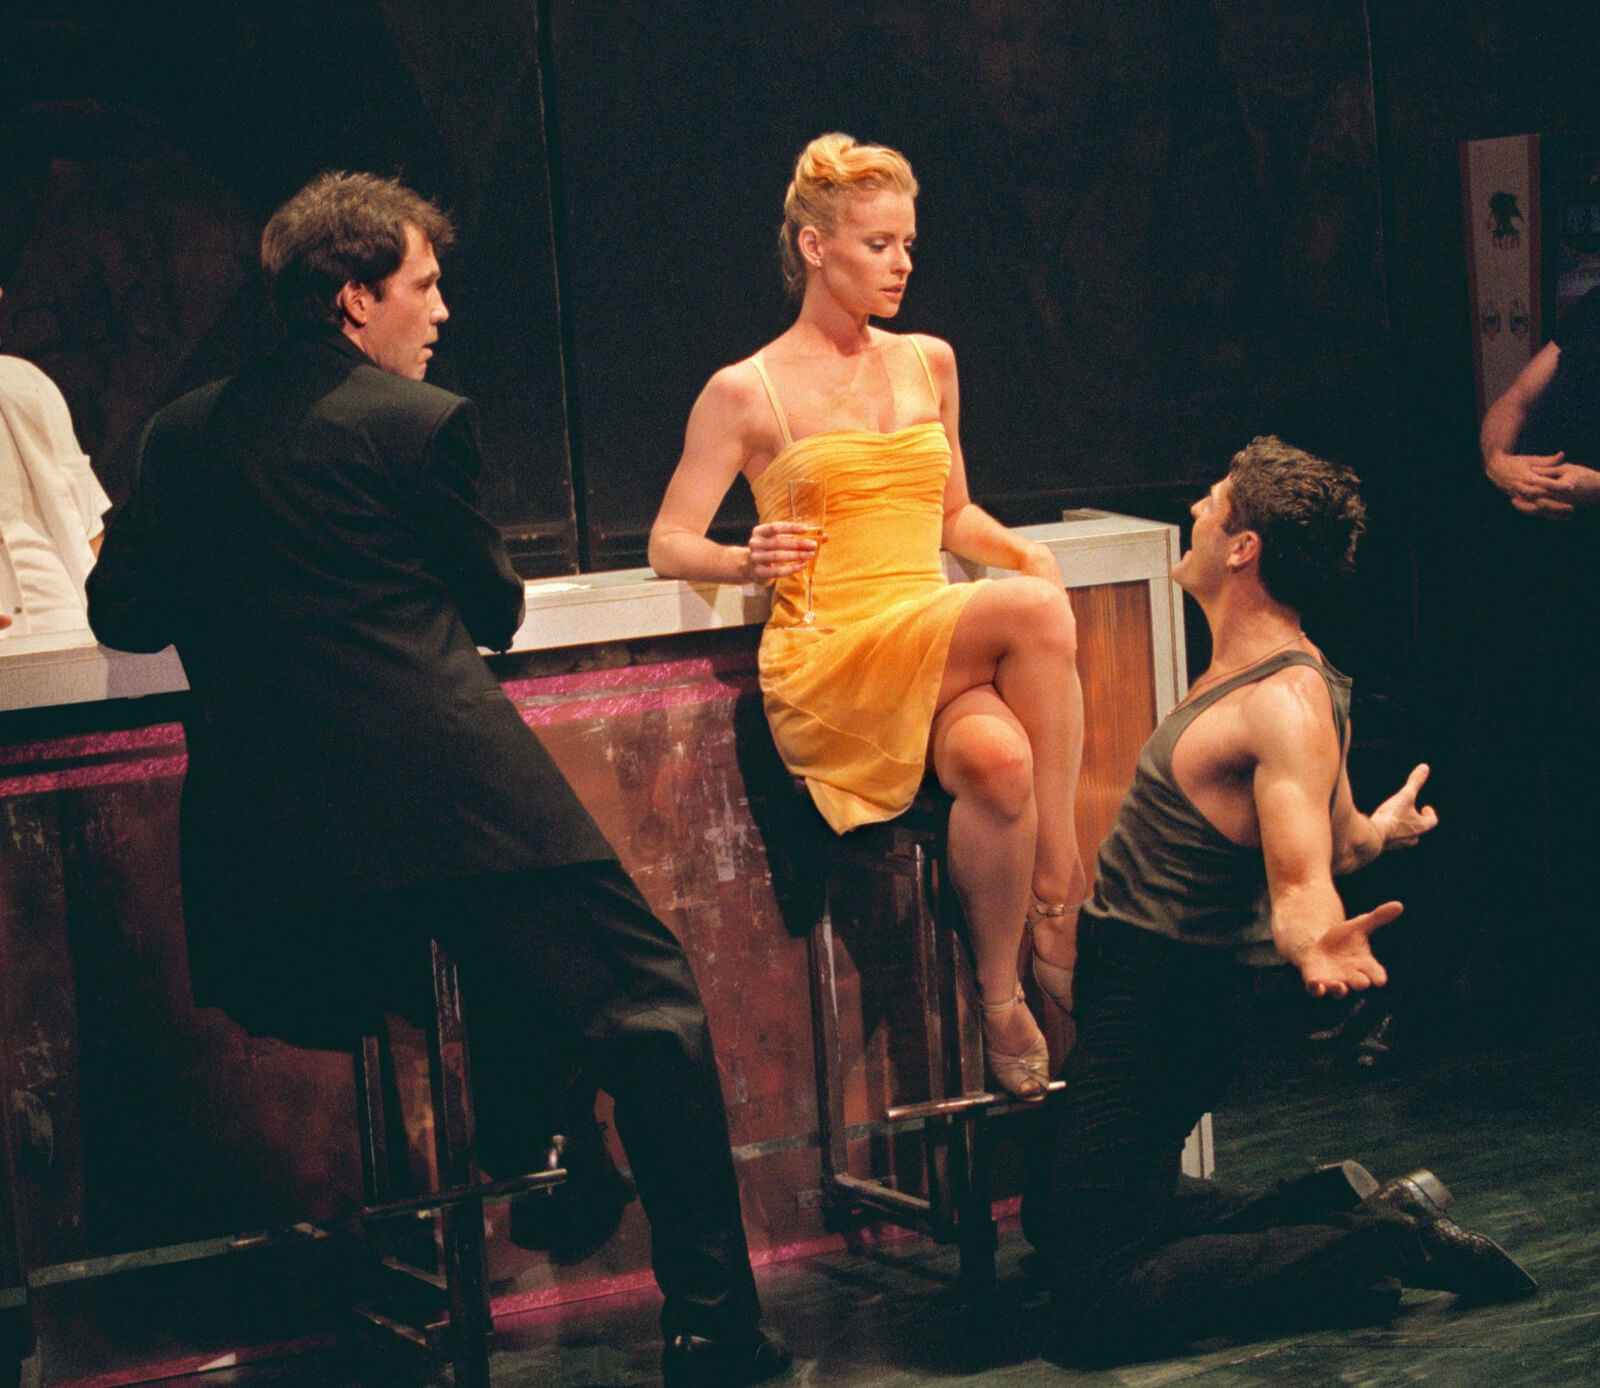 Michael Wiley (Boyd Gaines), Girl in the Yellow dress (Deborah Yates) sits at the bar with Johnny (Sean Martin Hingston) on his knees before her with outstretched arms.